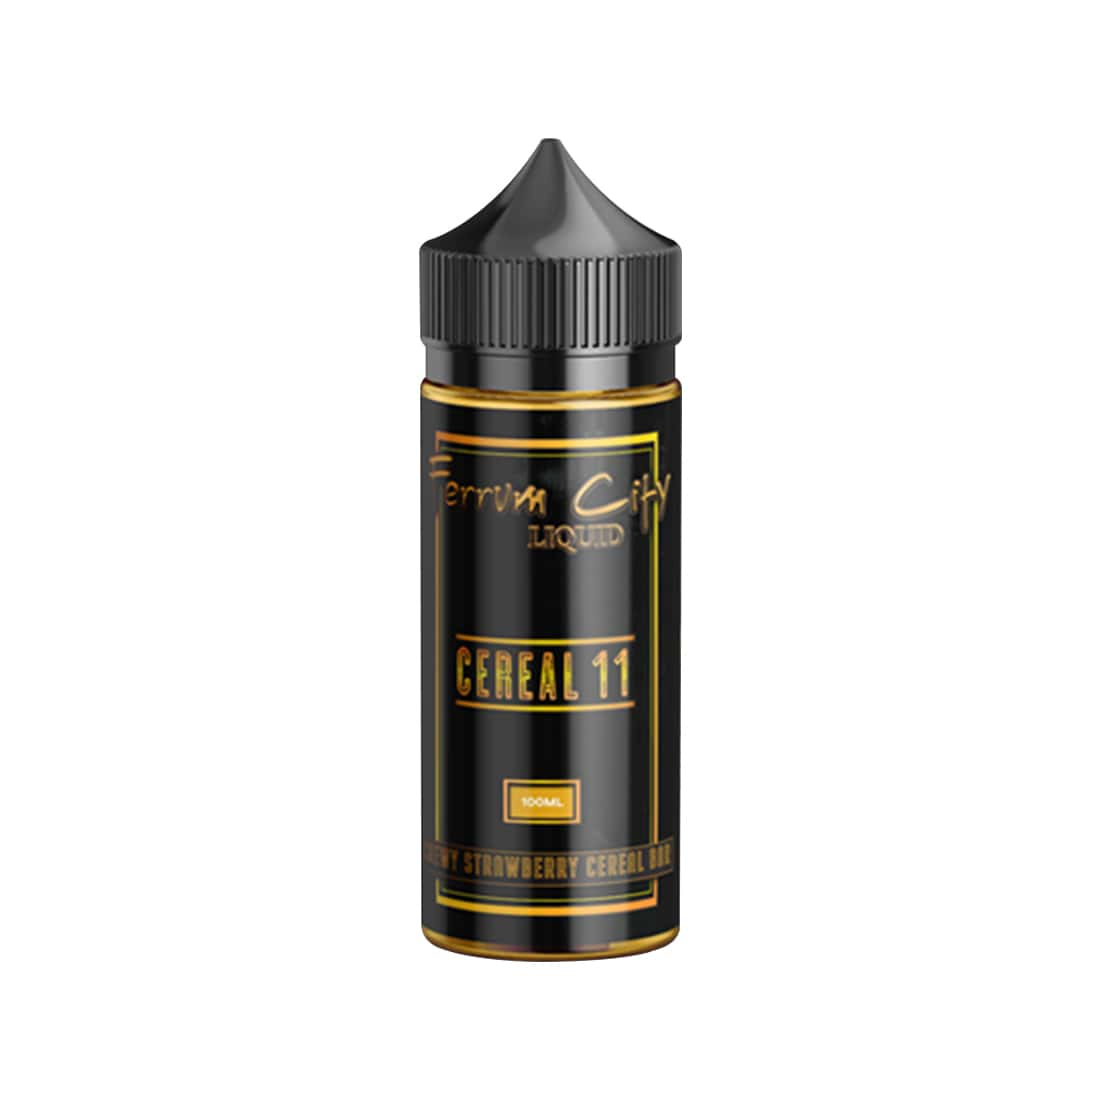 Photo de E liquide Ferrum City Cereal 11 0 mg 100 ml